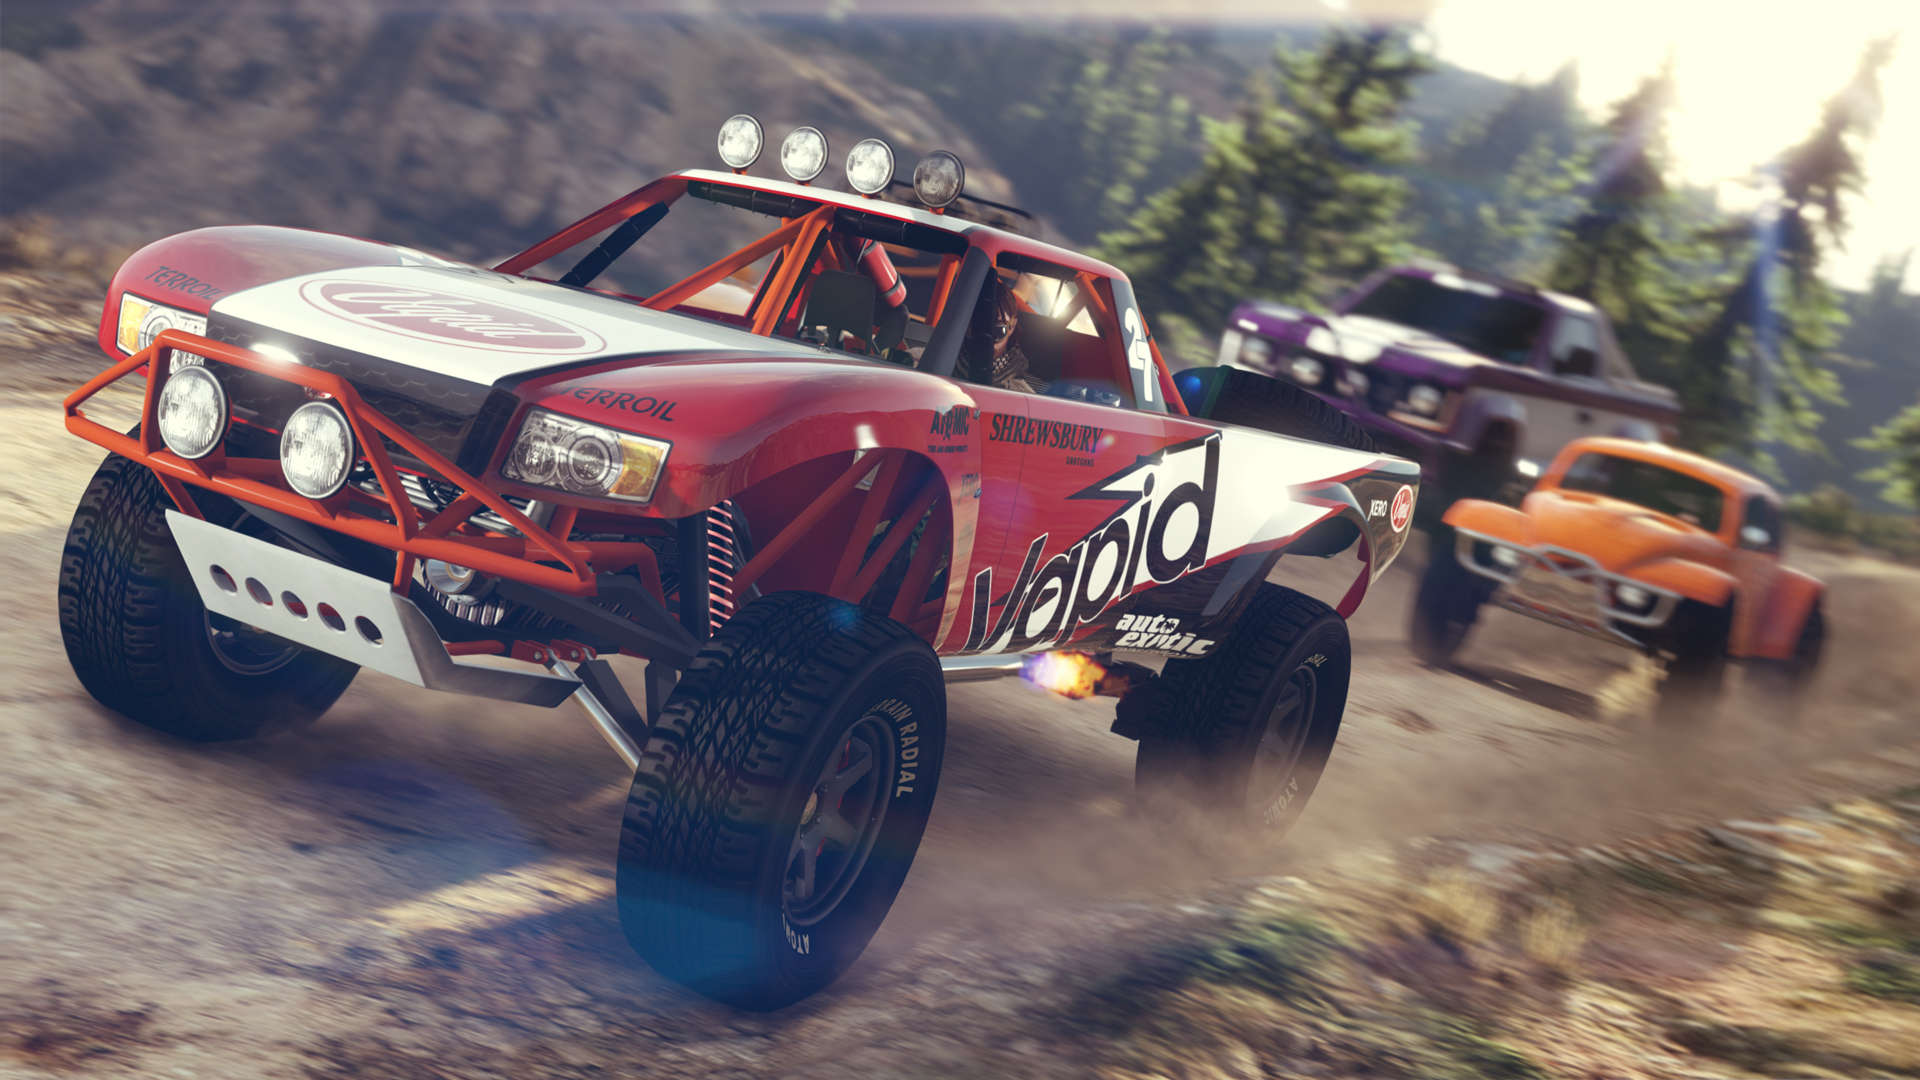 New GTA Online Update Today Brings The New Benefactor Krieger, New Races, Double Reward Bonuses, Discounts And More